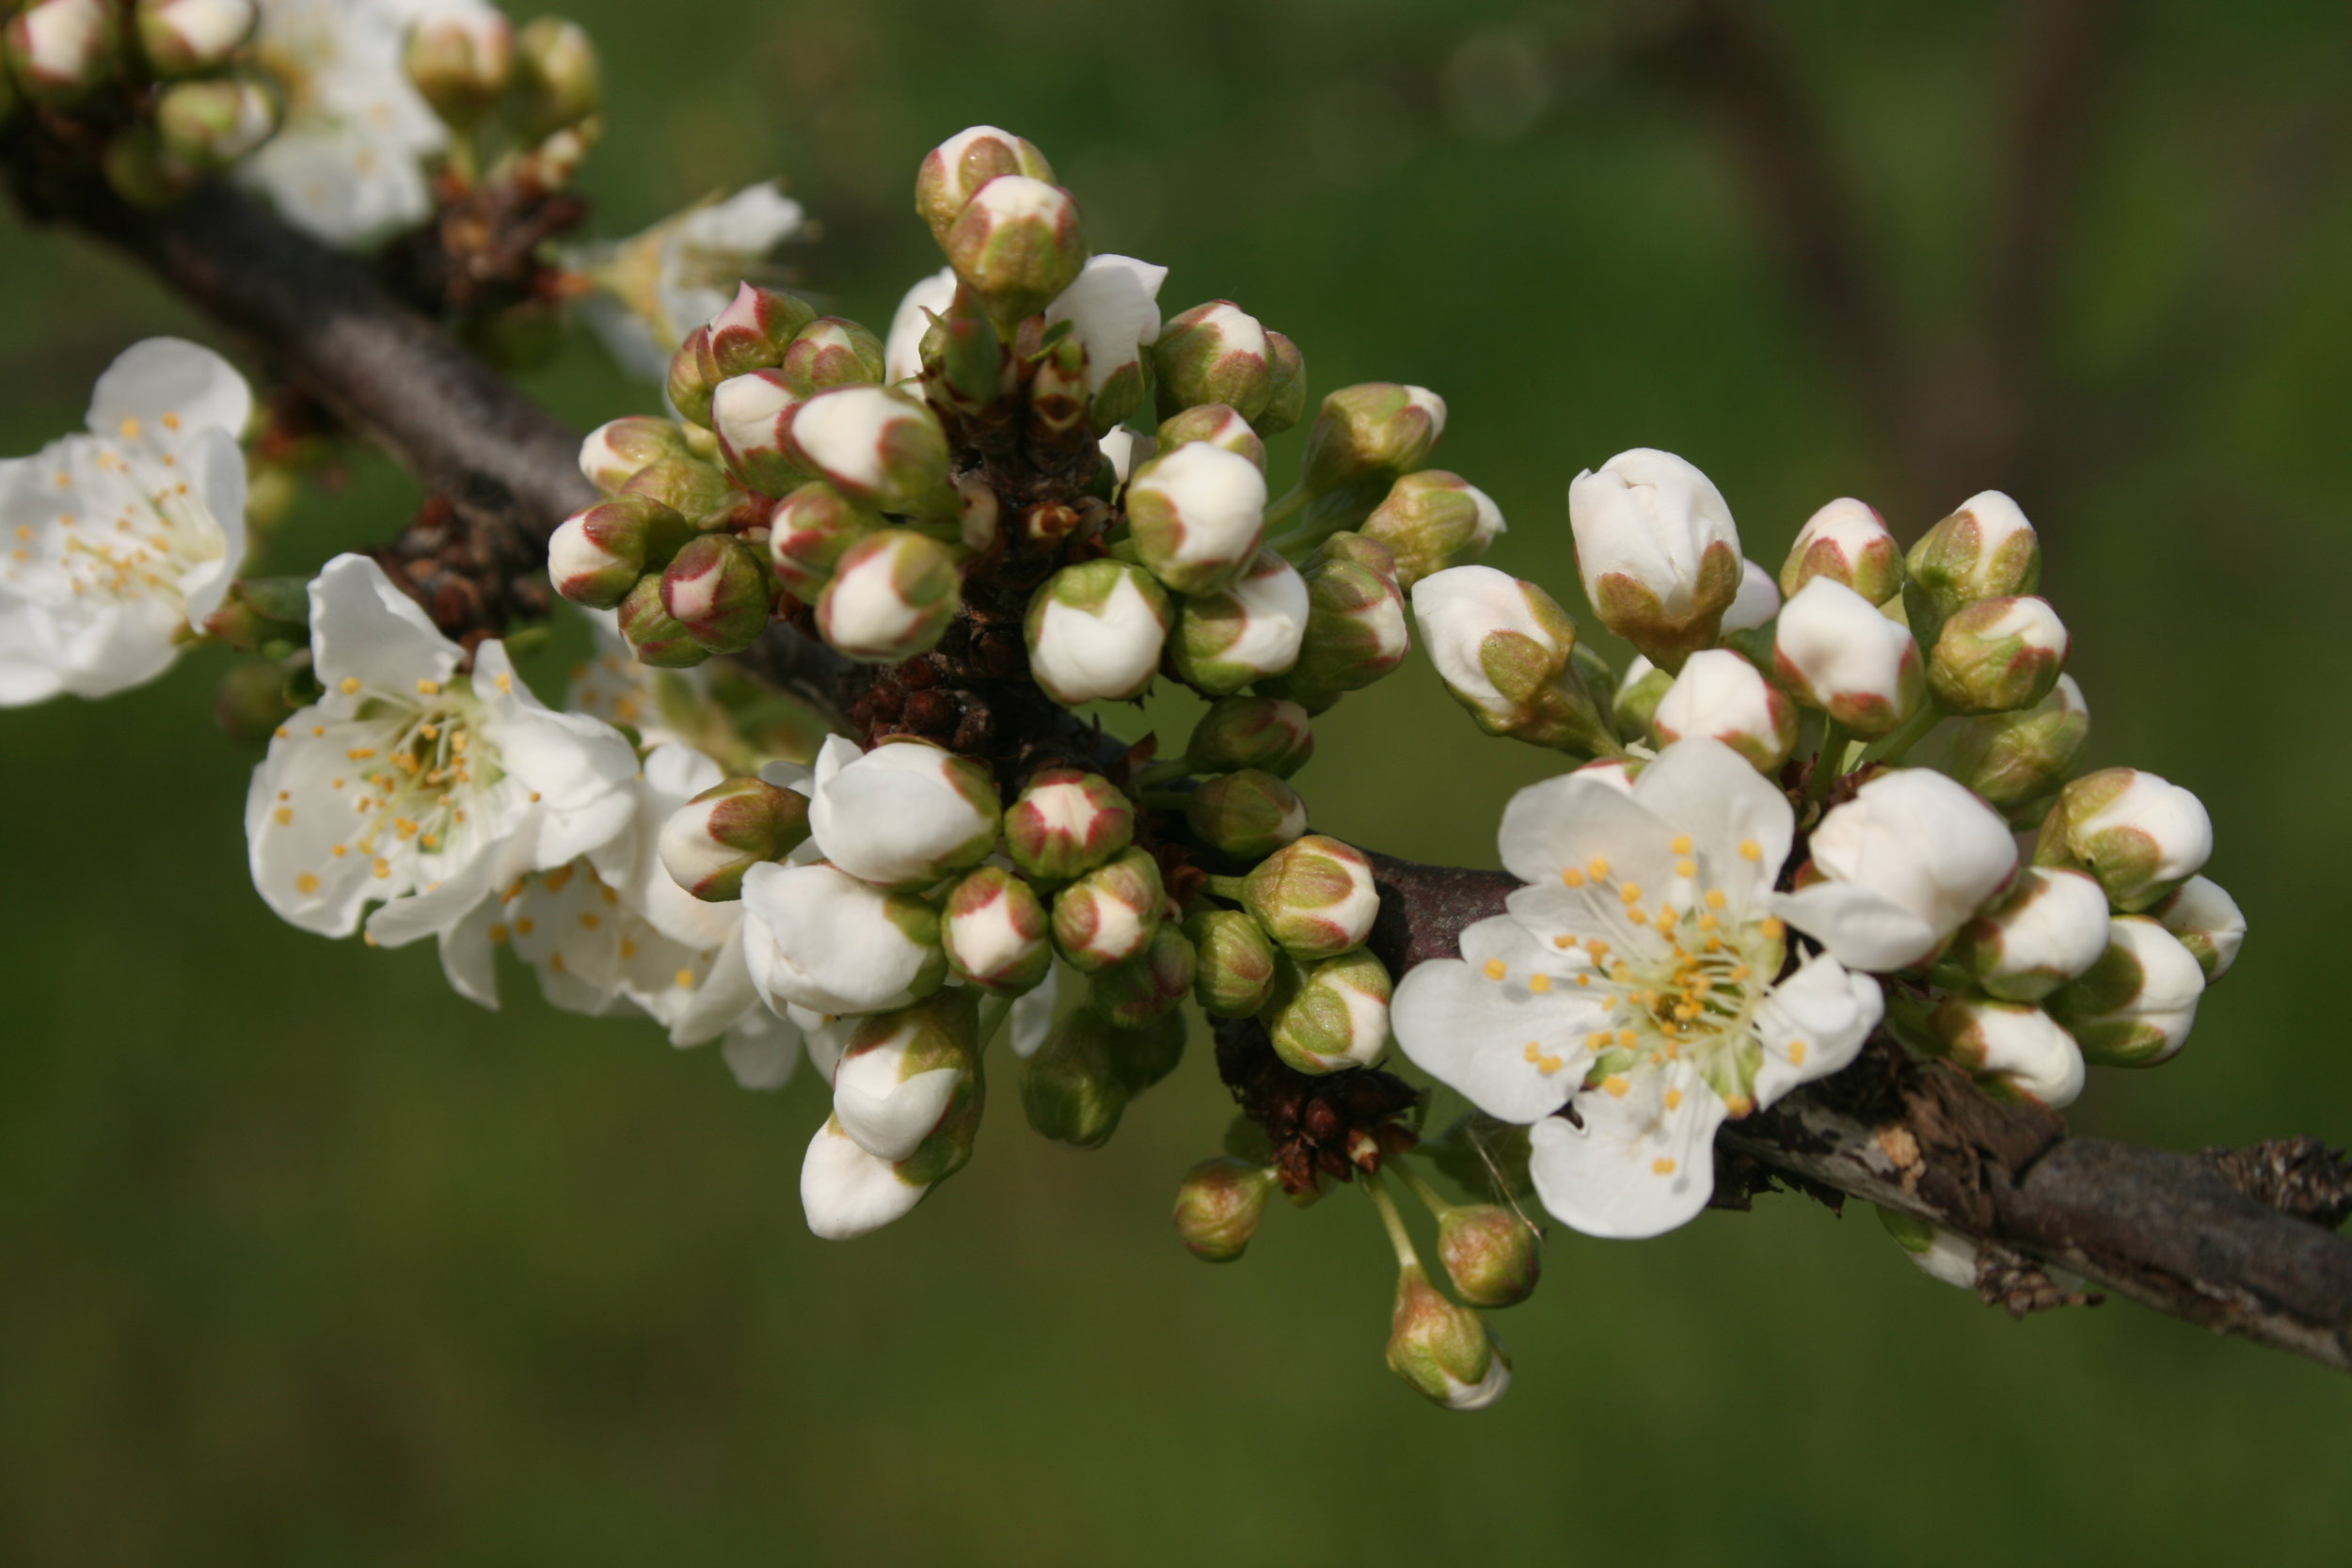 Clusters of plum blossoms ready to bloom!